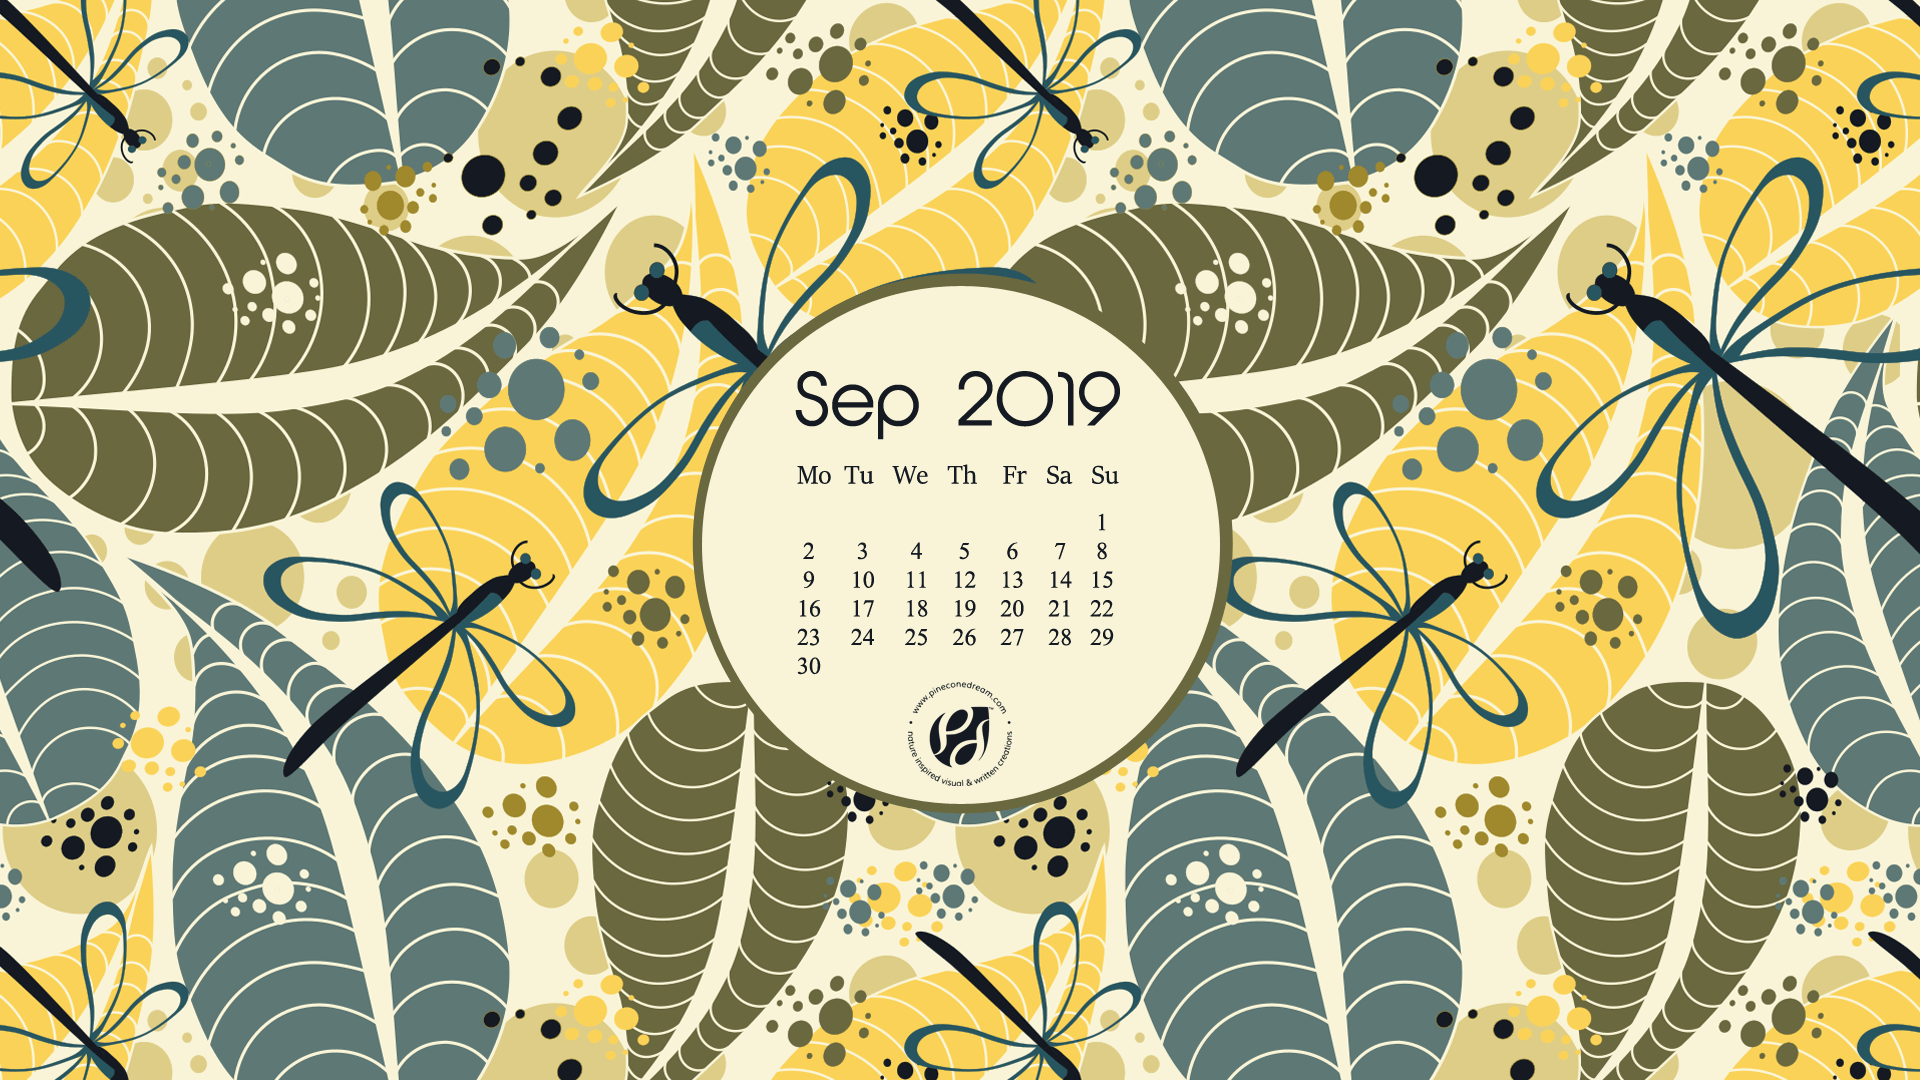 September 2019 free calendar wallpapers & printable planner